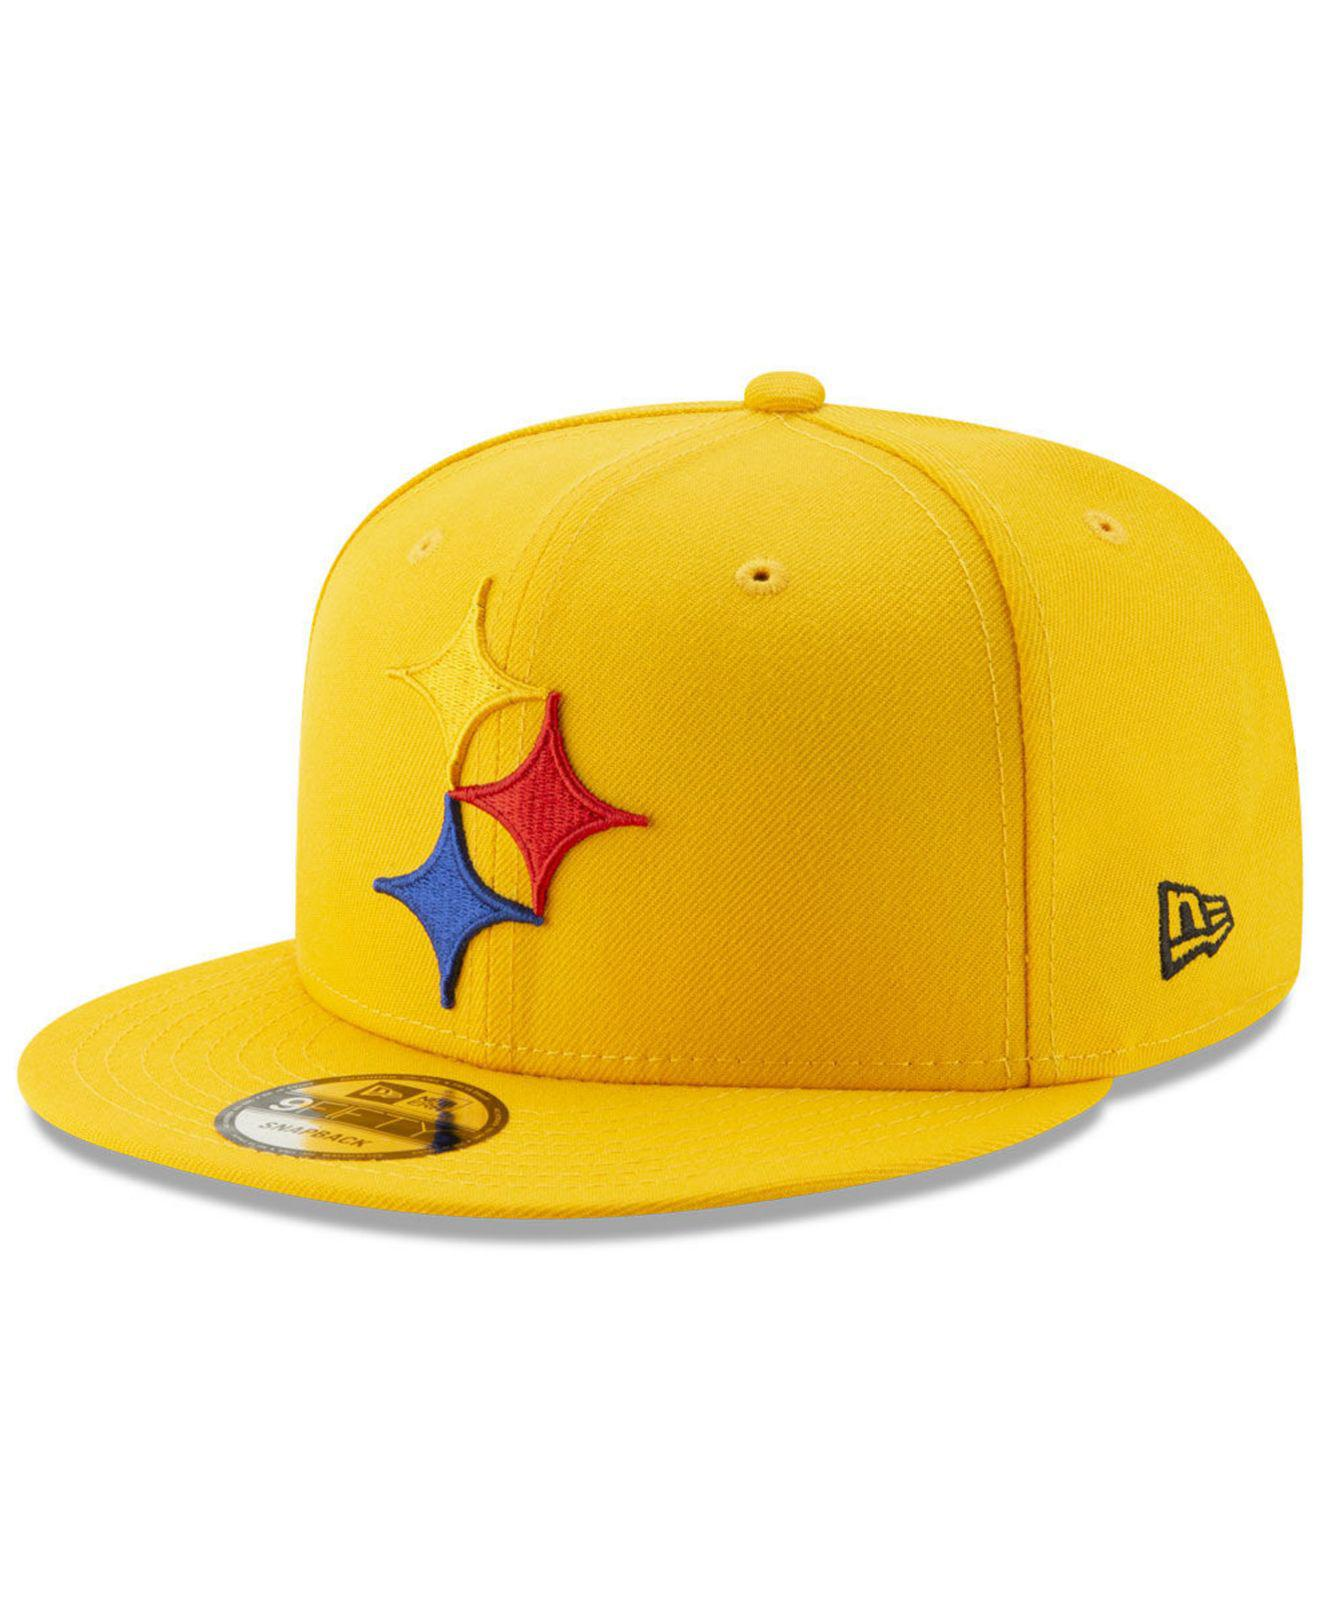 7738a4b2eff Lyst - KTZ Pittsburgh Steelers Logo Elements Collection 9fifty ...